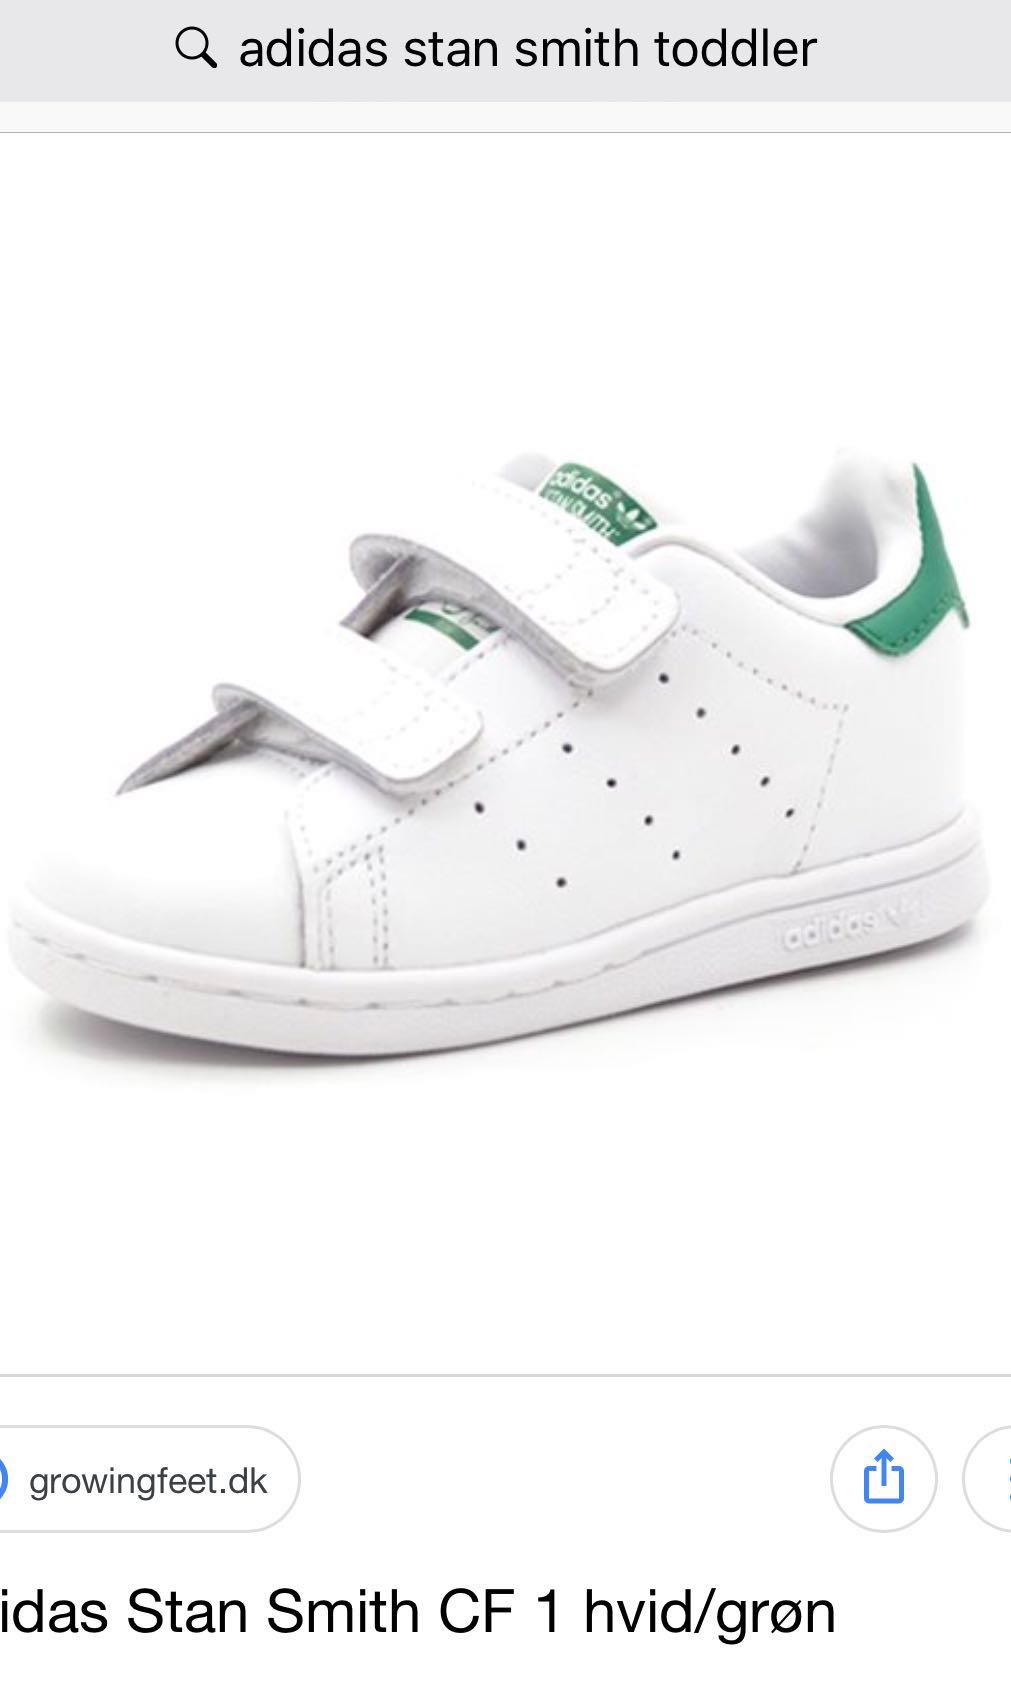 separation shoes f753d ff5d3 Authentic Adidas Stan Smith CF 1 toddler shoes